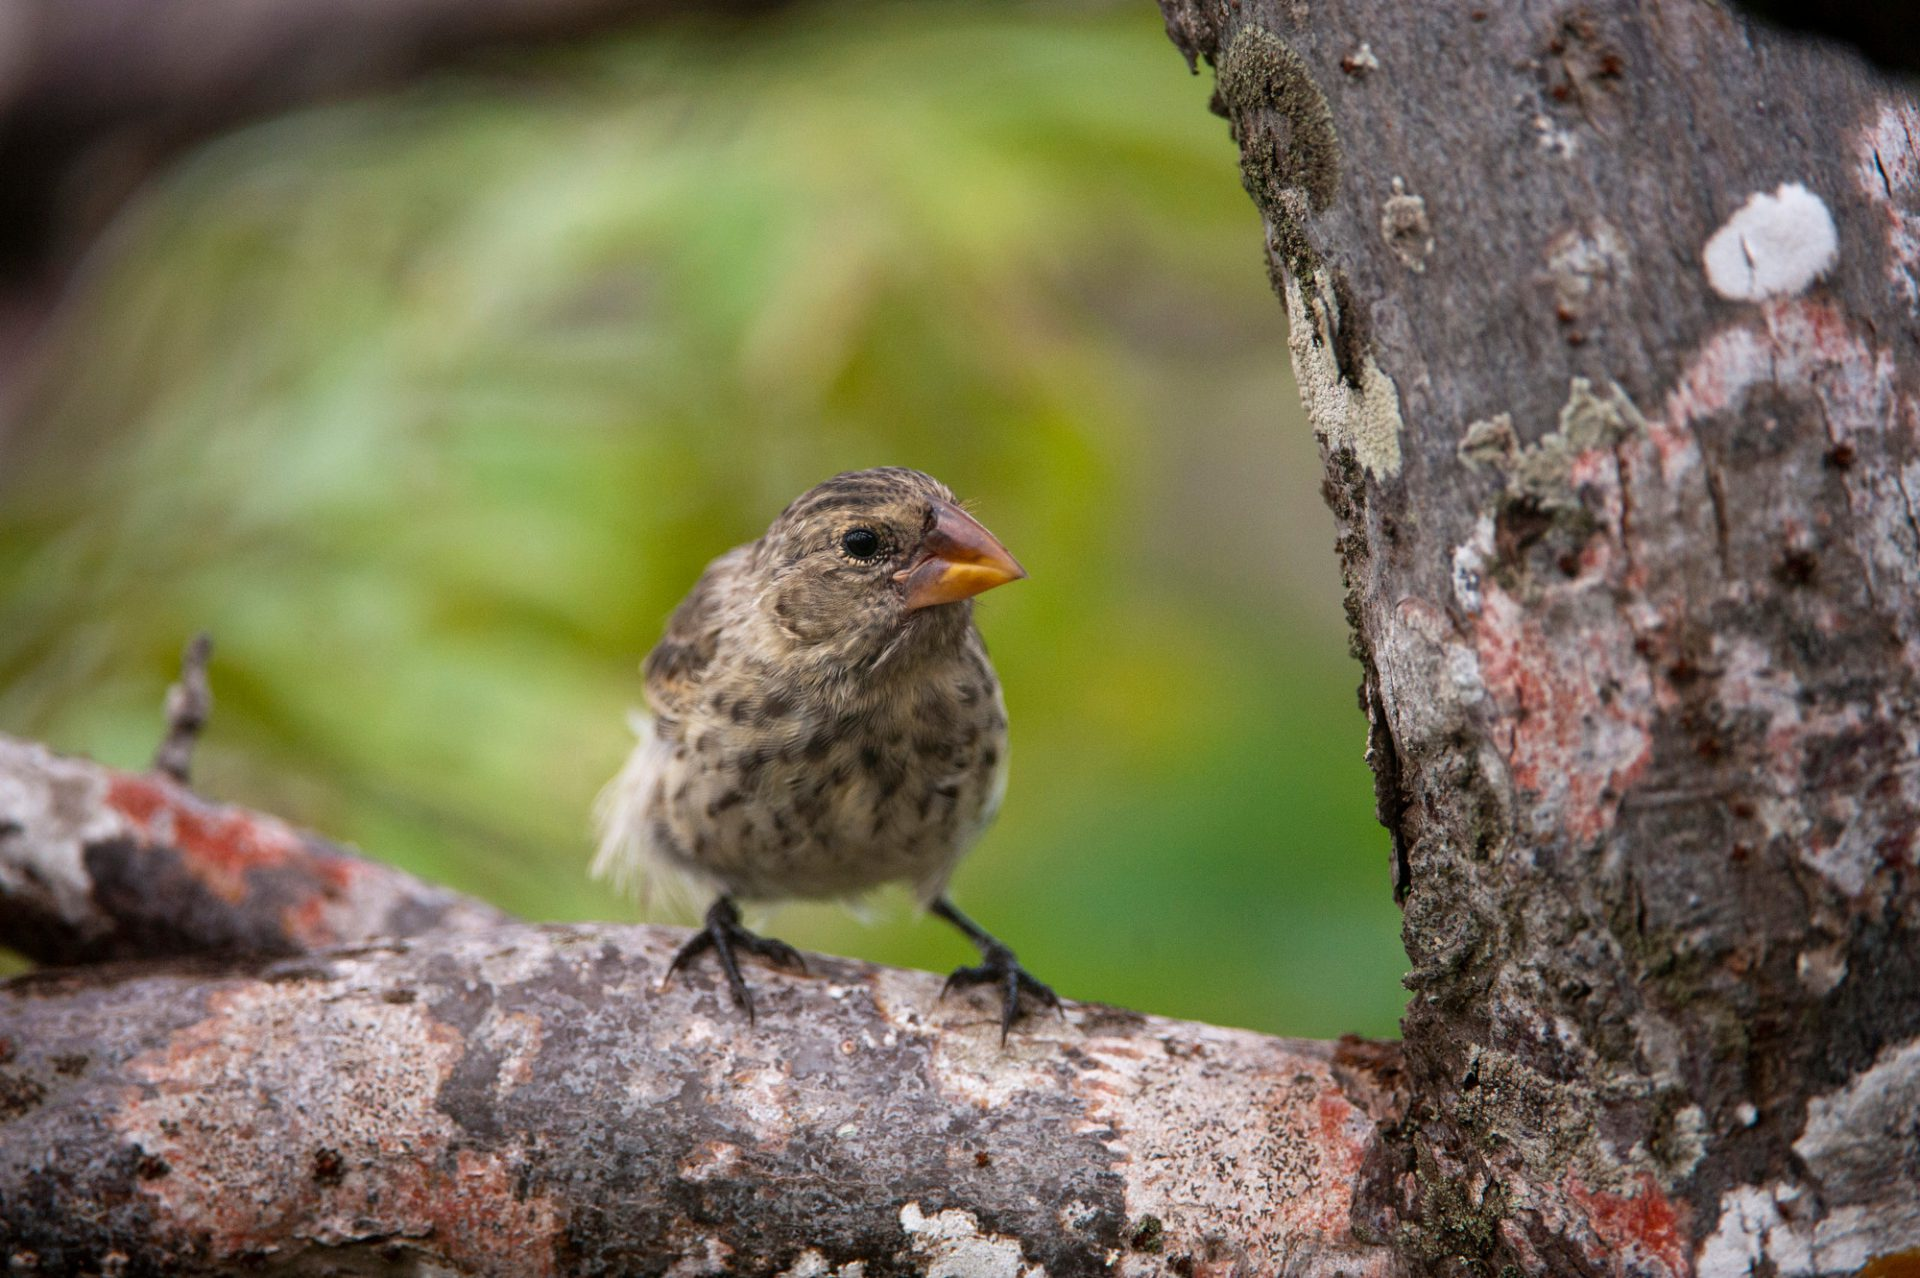 Photo: A medium ground finch, Geospiza fortis, on San Cristobal Island in the Galapagos.